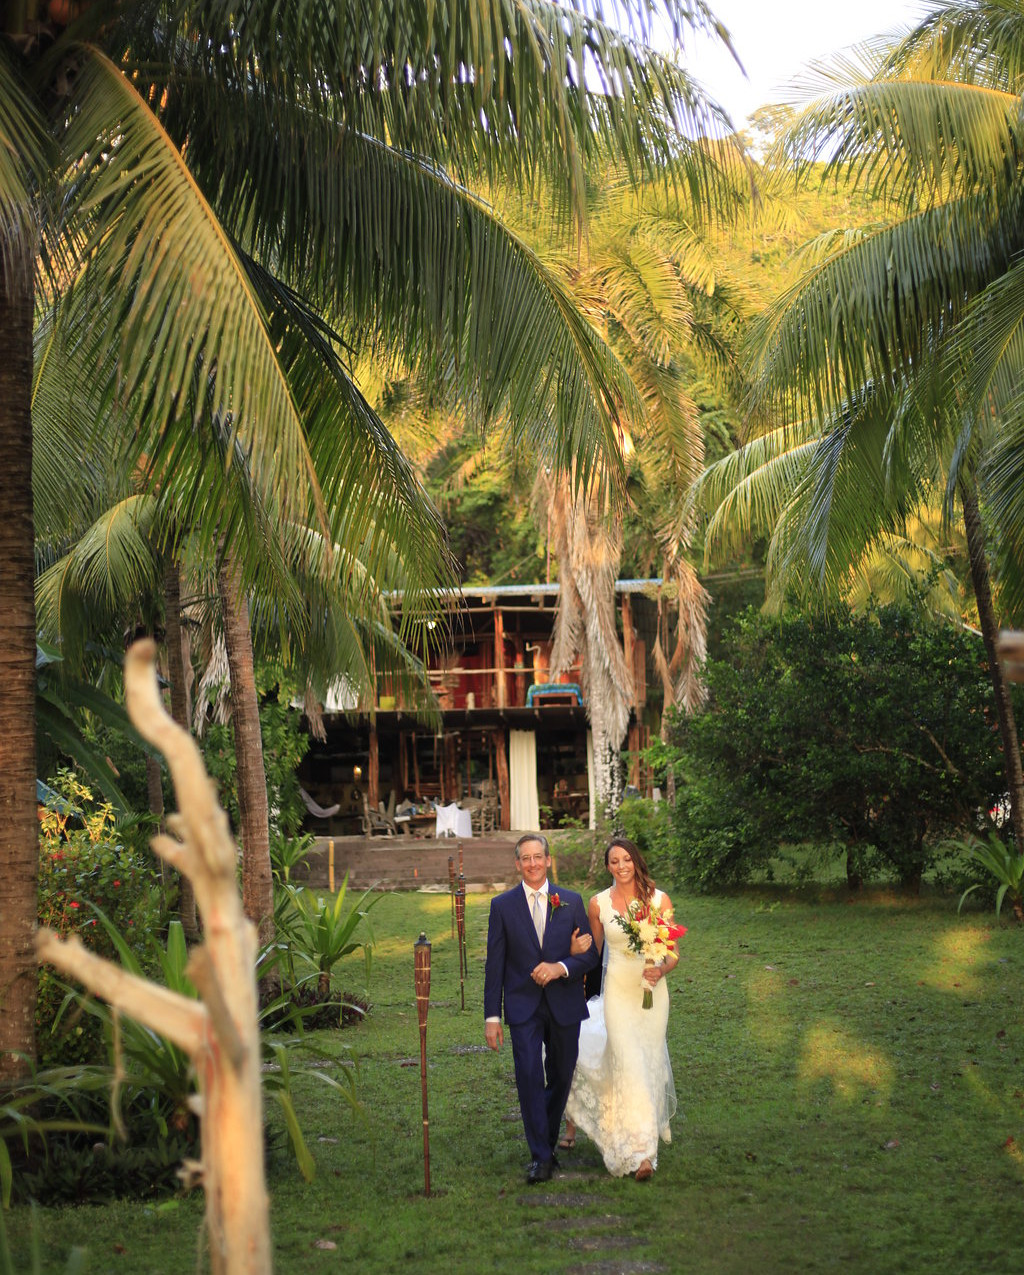 getting married in the tropics